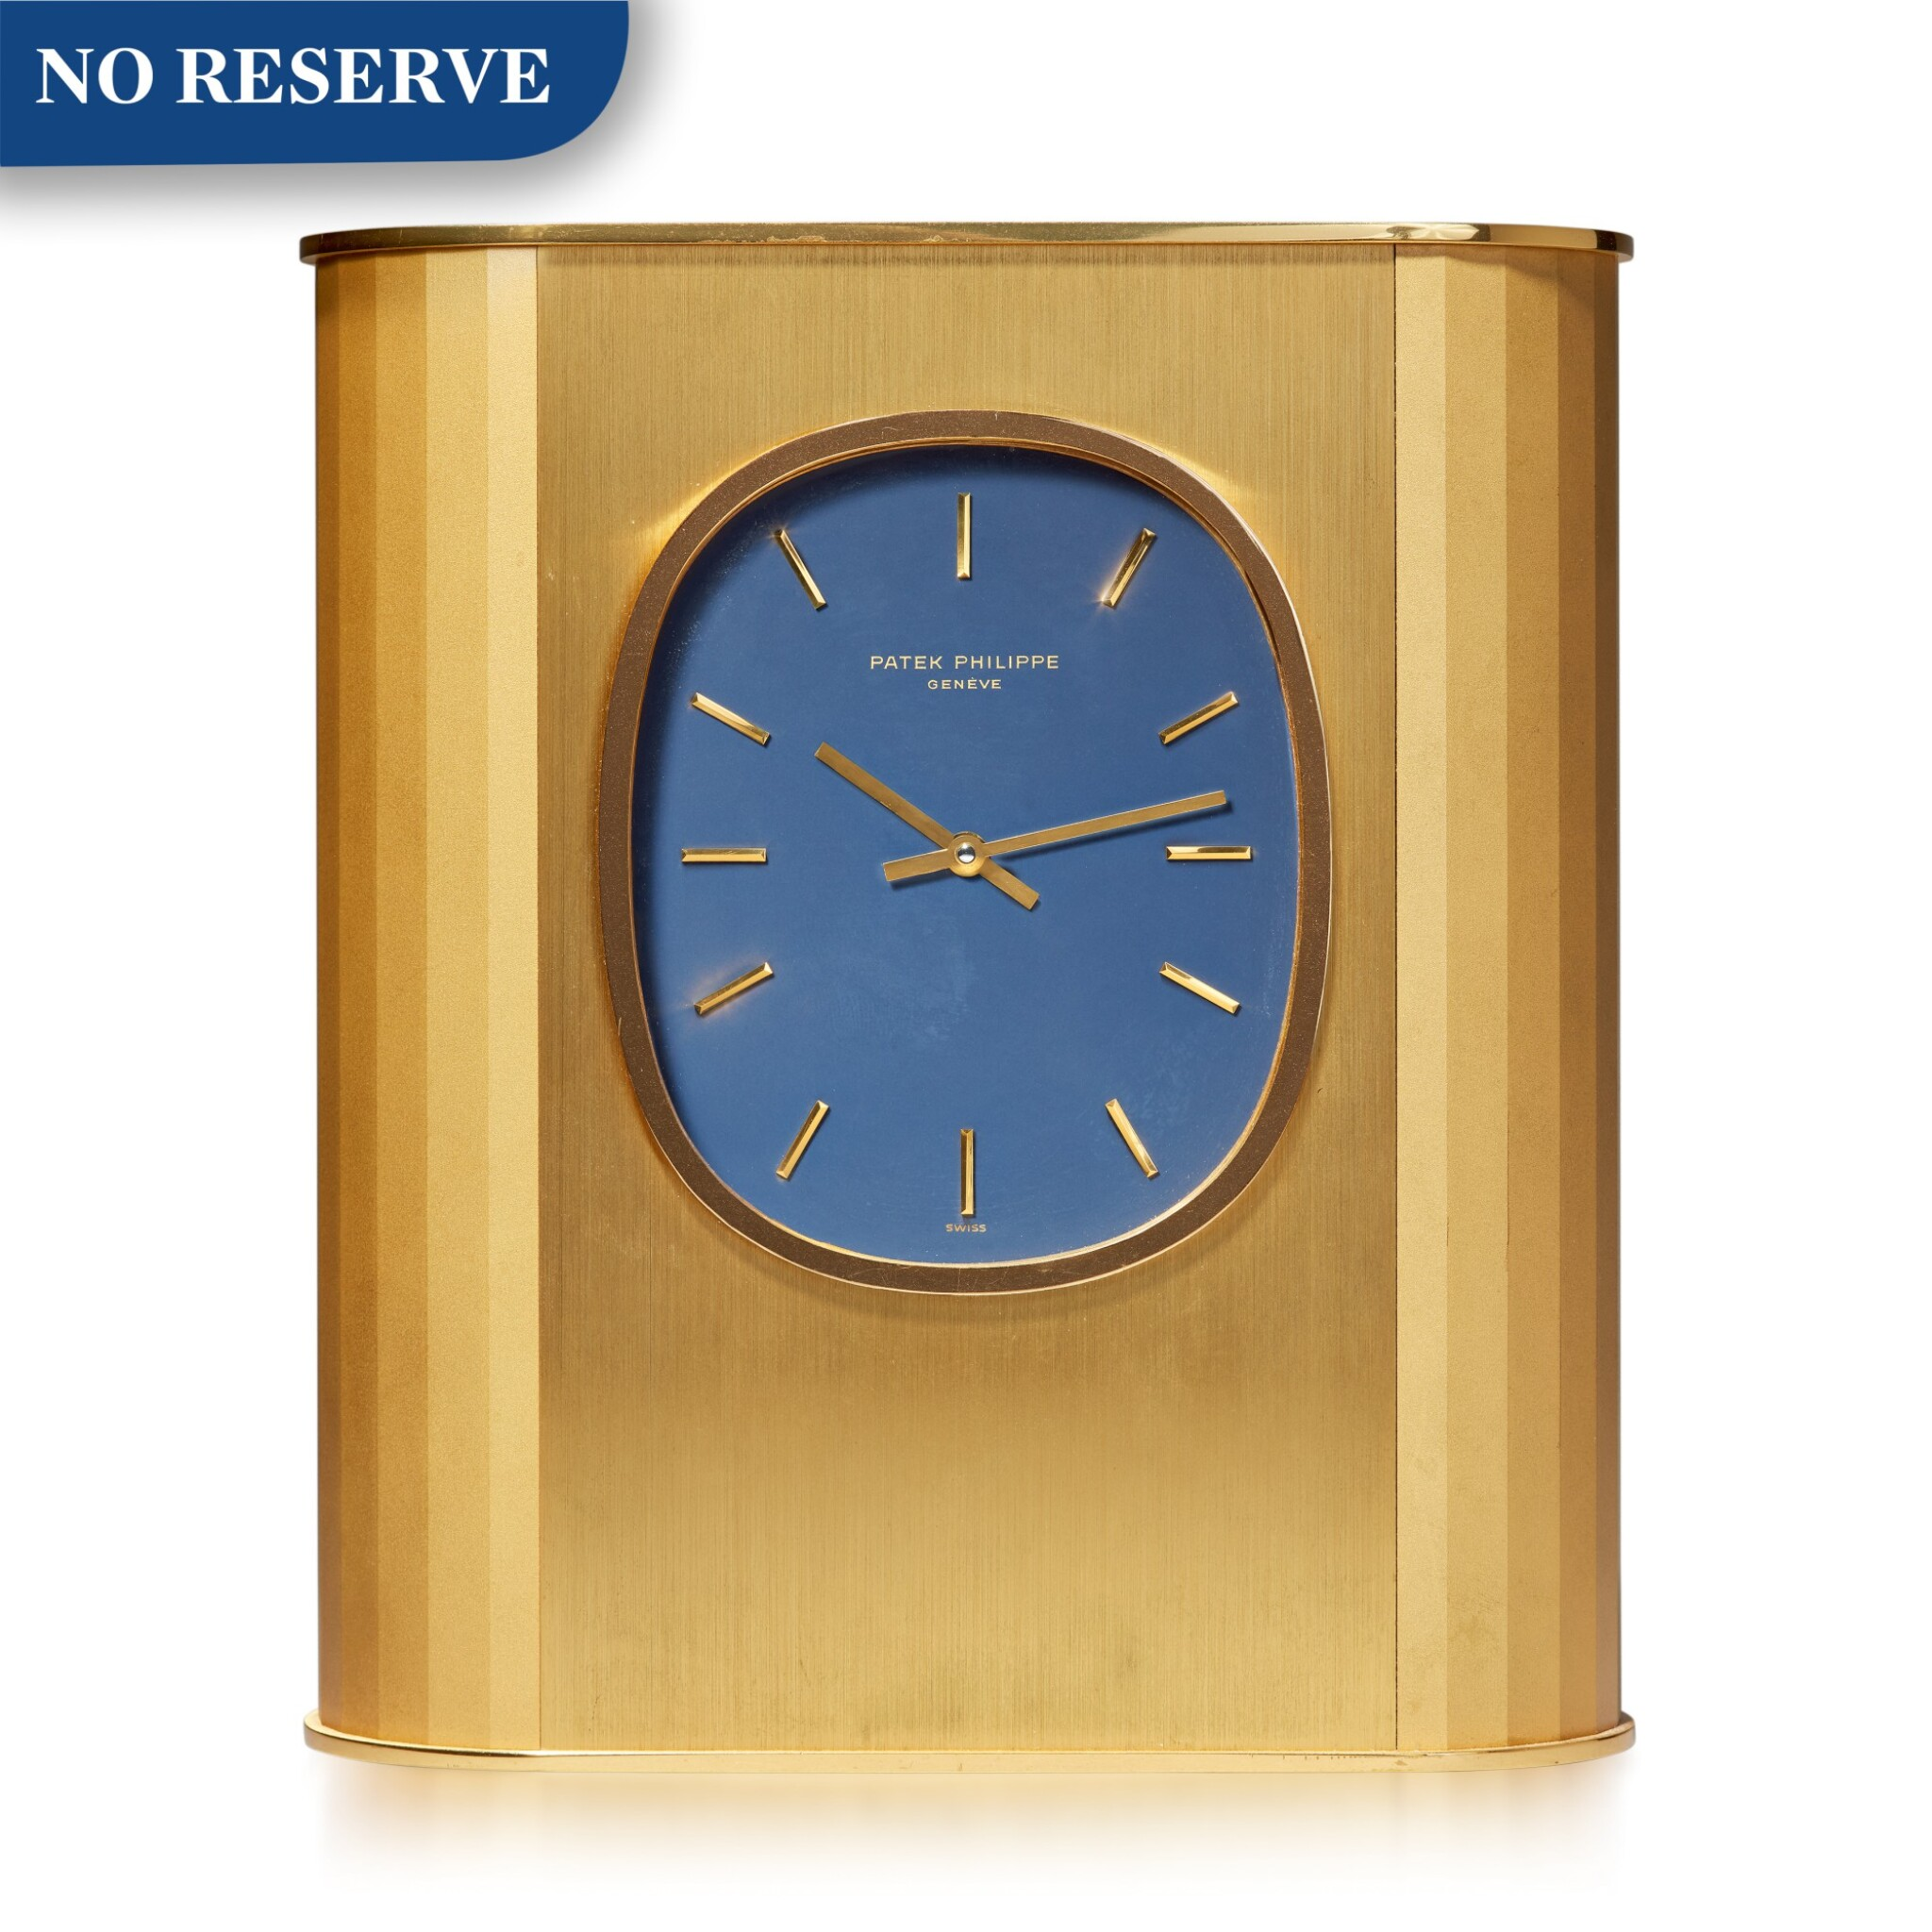 REFERENCE 1505 ELLIPSE D'OR SOLAR A GILT BRASS SOLAR-POWERED DESK TIMEPIECE, MADE IN 1979